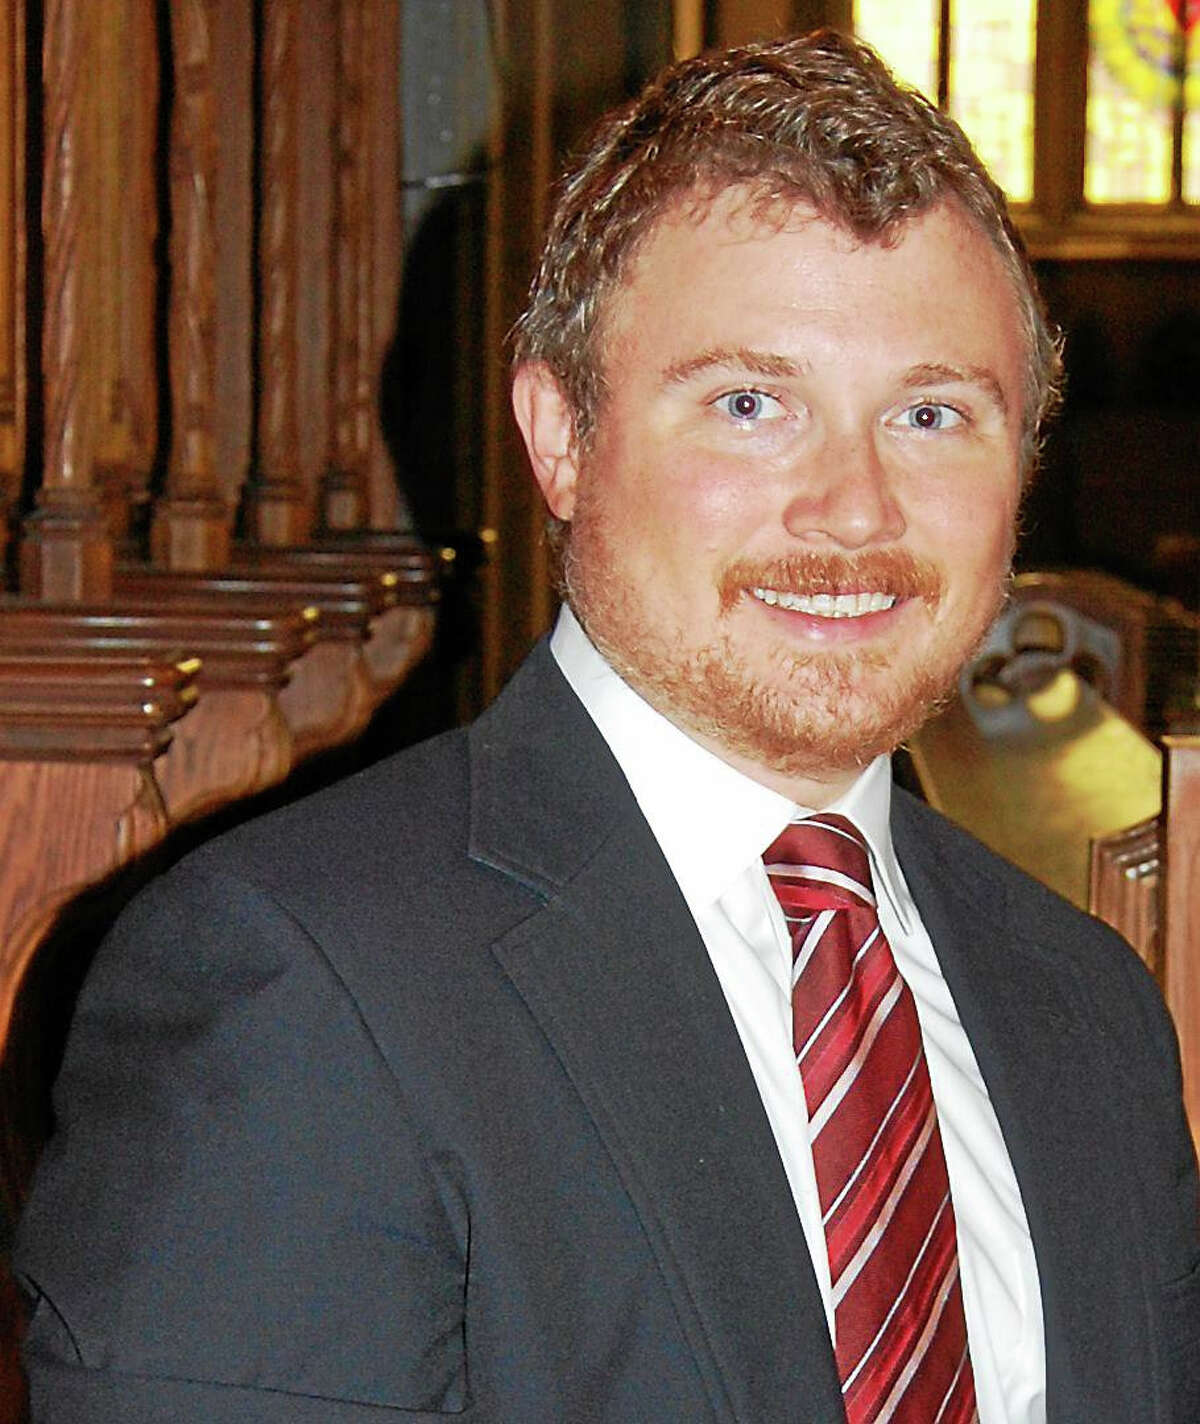 Contributed photoOrganist James Bush performs at St. Michael's church in Litchfield Nov. 1.